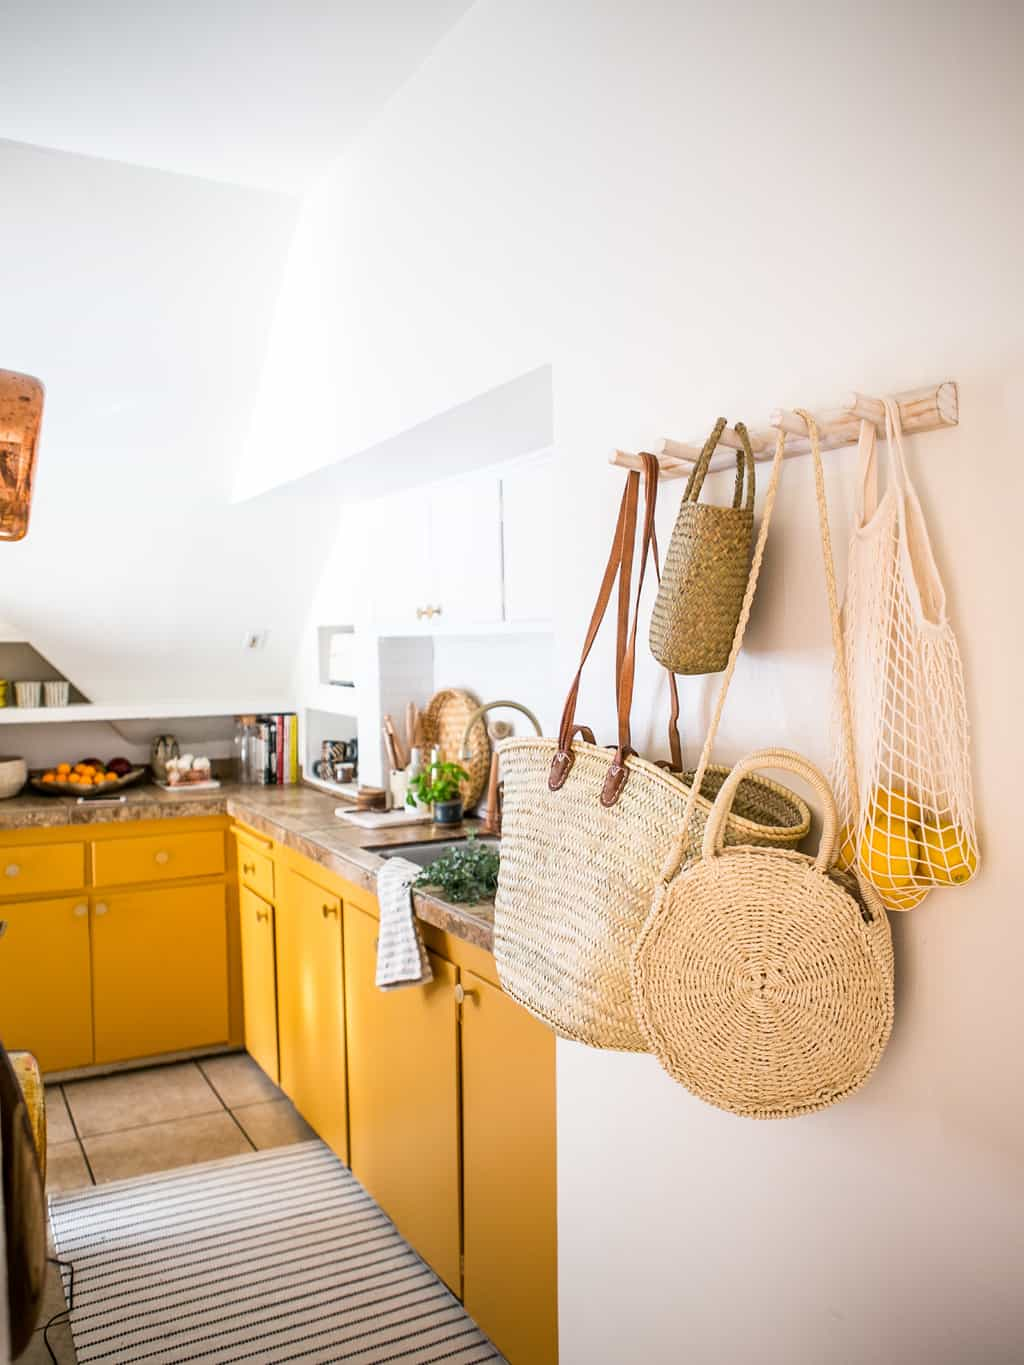 Newly finished kitchen with a rack of hanging baskets and yellow mustard cabinets.